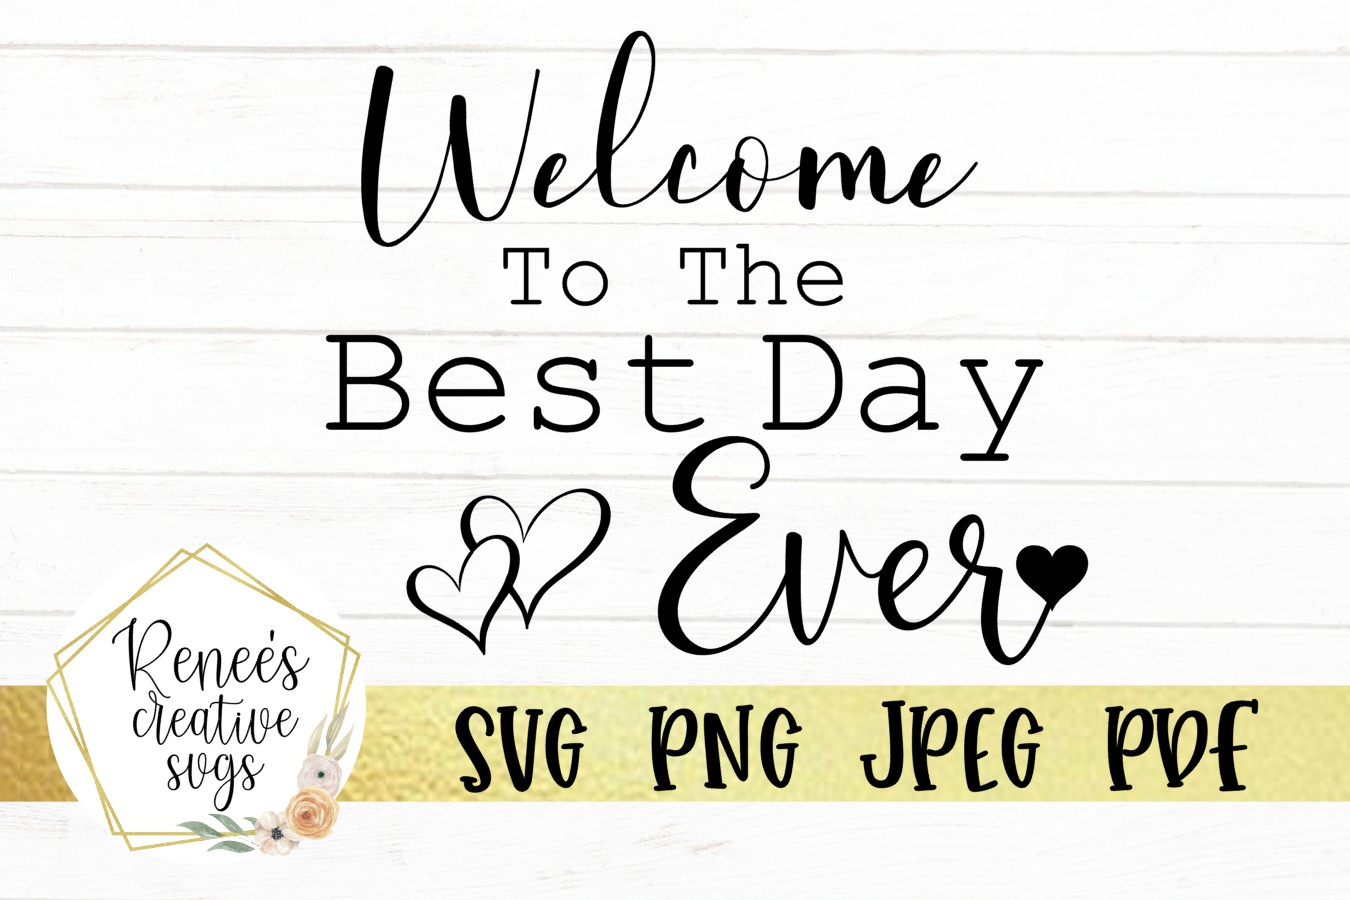 Welcome To The Best Day Ever|Wedding Quotes | SVG Cut File example image 2